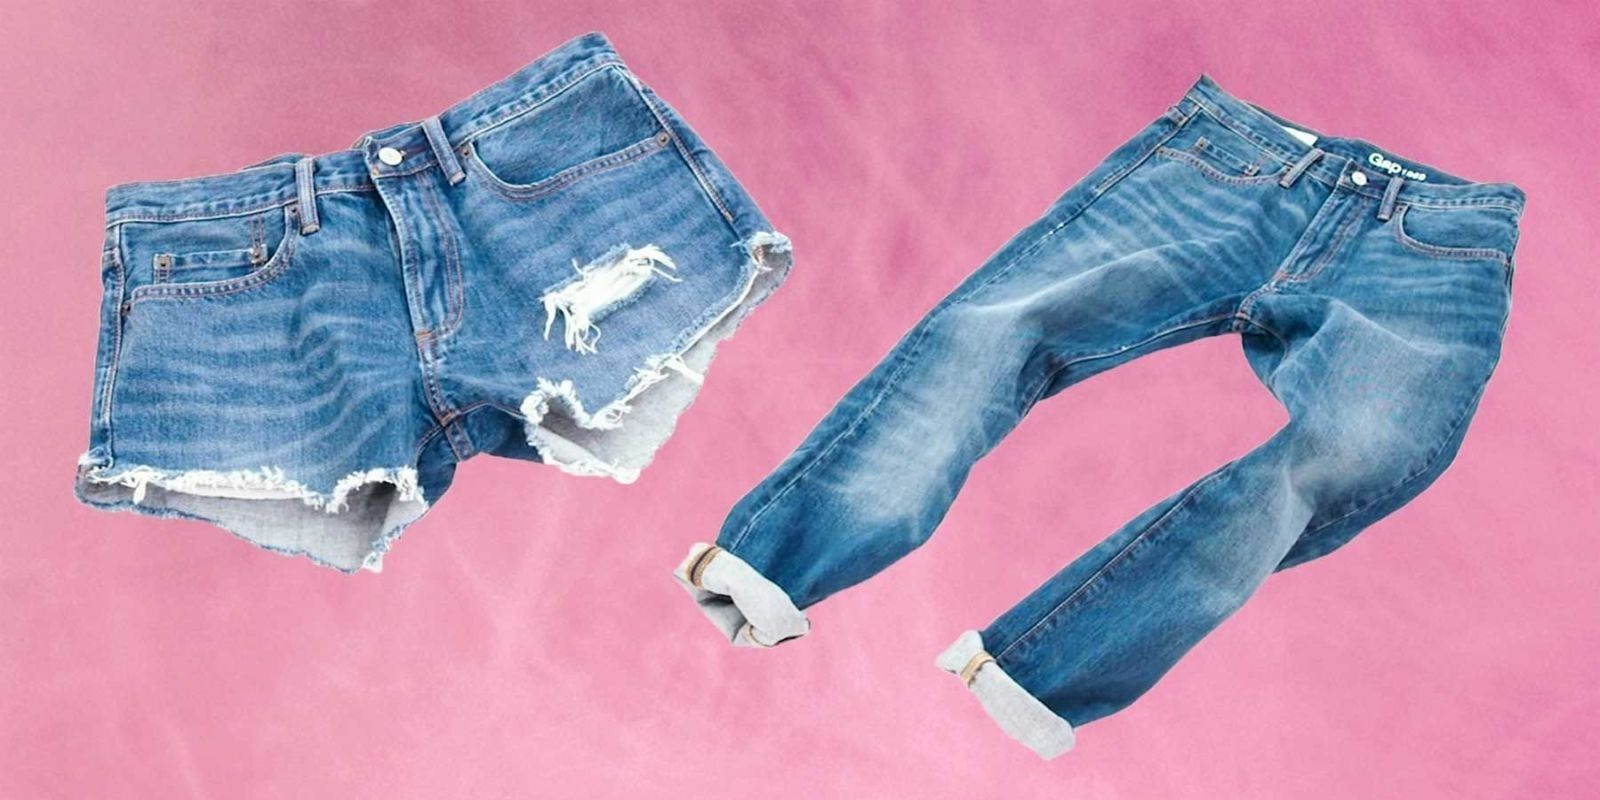 This Video Brilliantly Shows How to Turn Your Old Jeans Into Cutoff Shorts